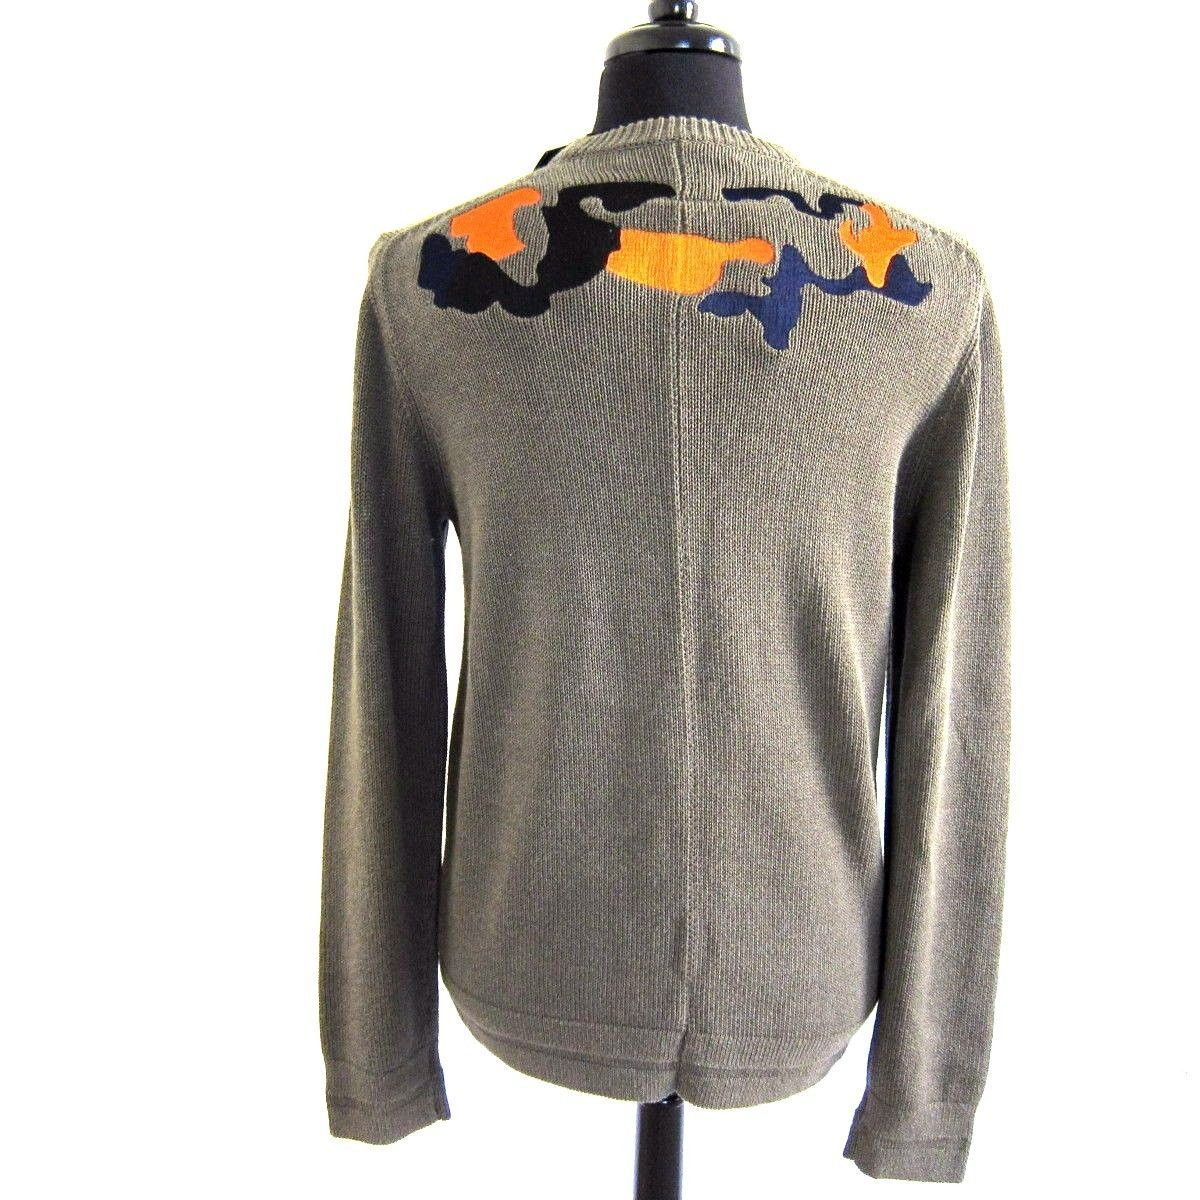 R-694336 New Givenchy Khaki Embroidered Knitted Sweater Size L